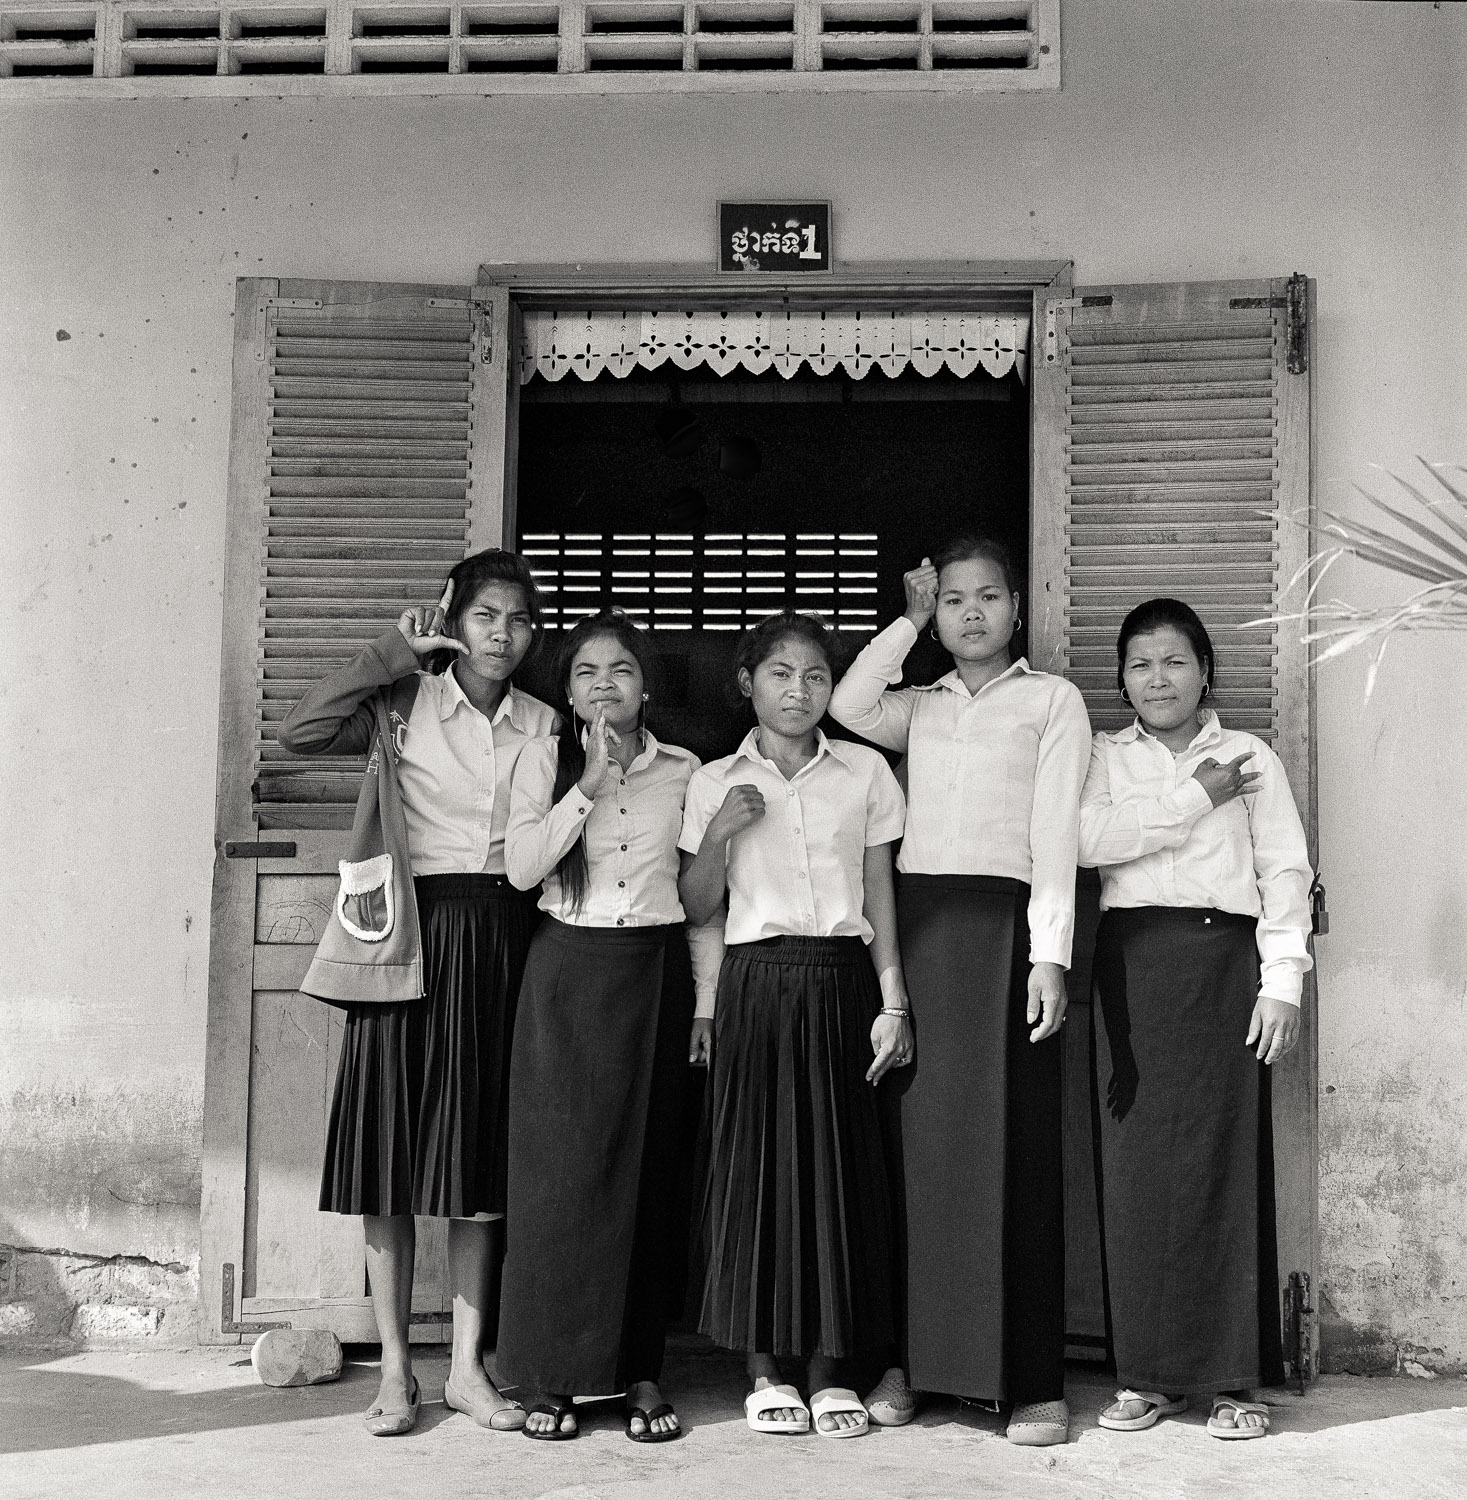 Basic Education students in Kampot, Cambodia.  Each student is showing their name sign in front of their classroom.